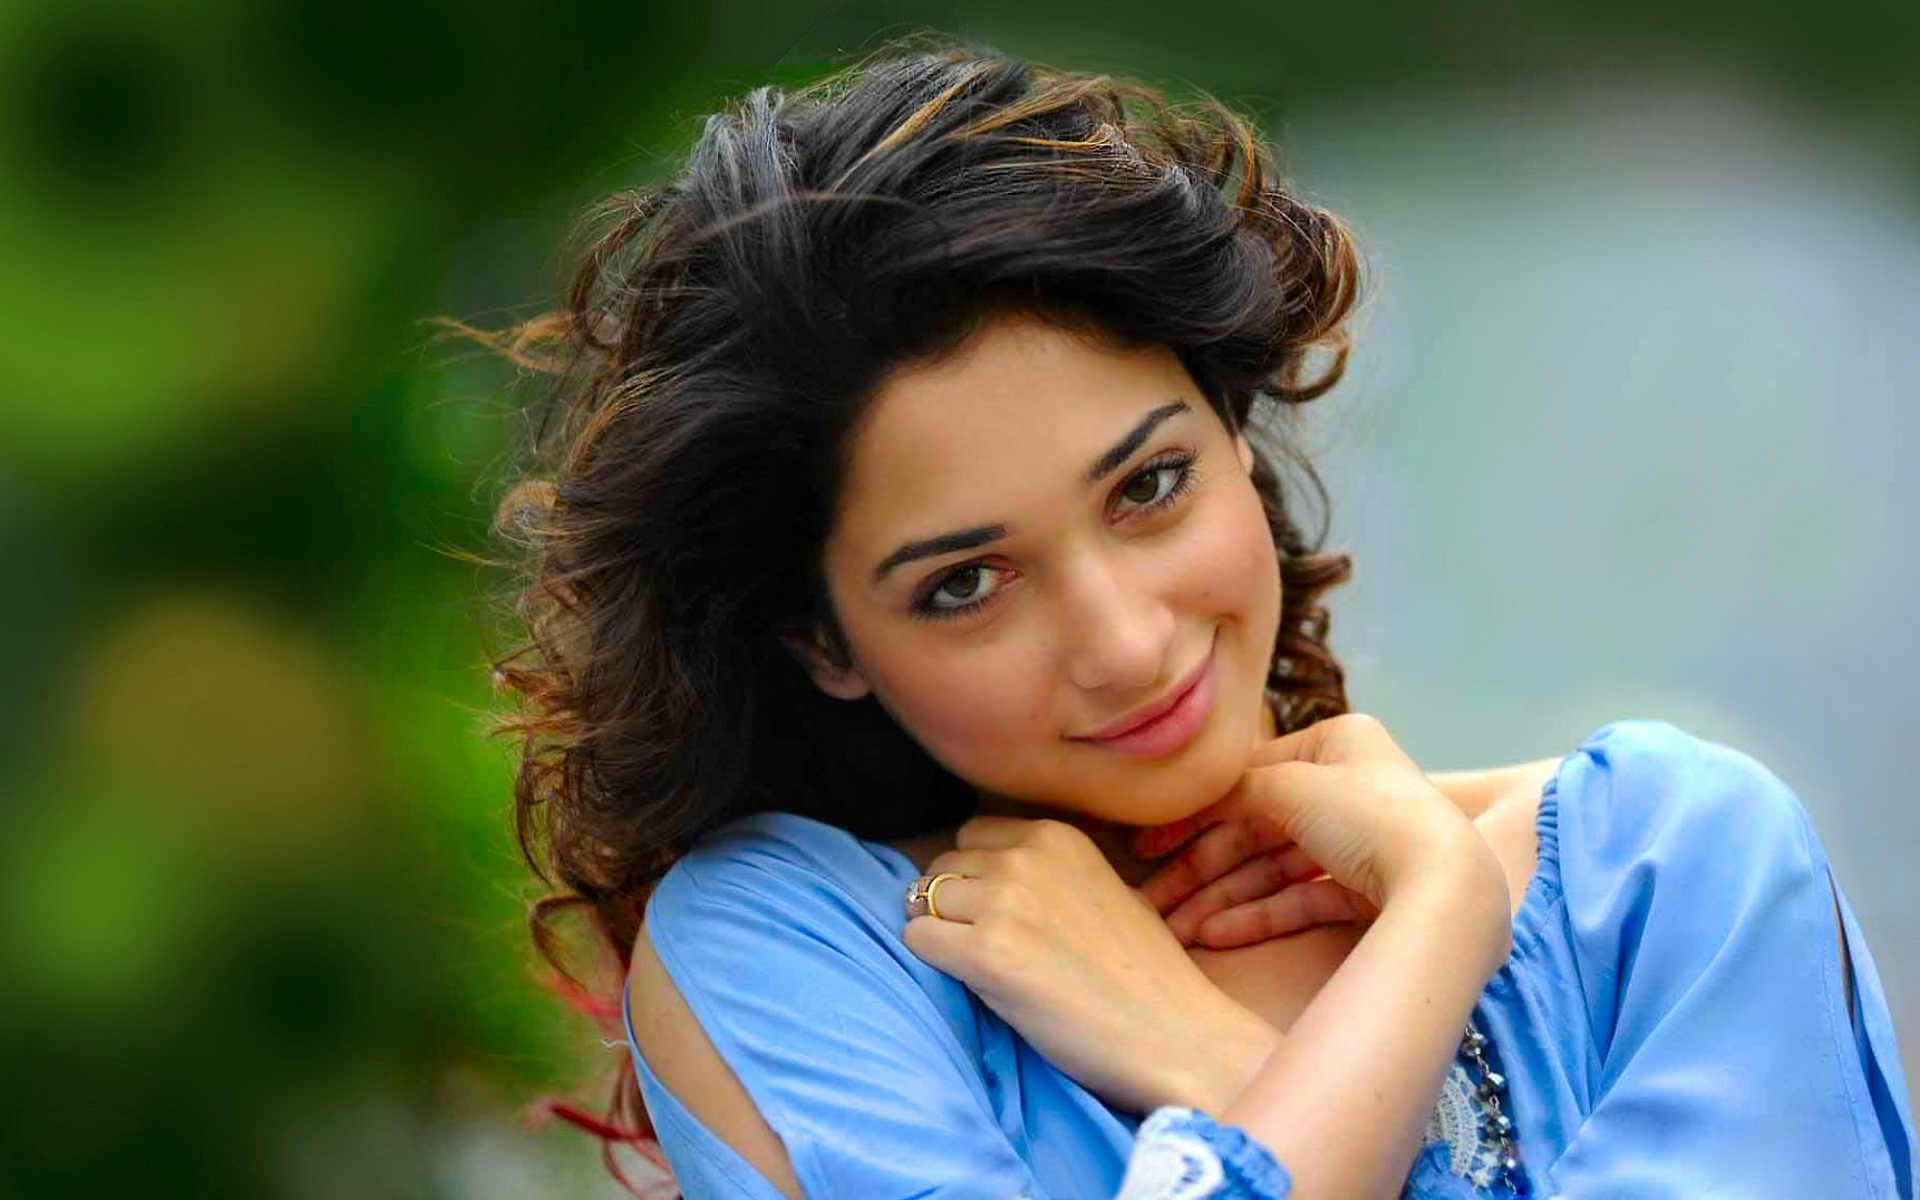 Tamana Hd: Tamanna Wallpapers High Resolution And Quality Download